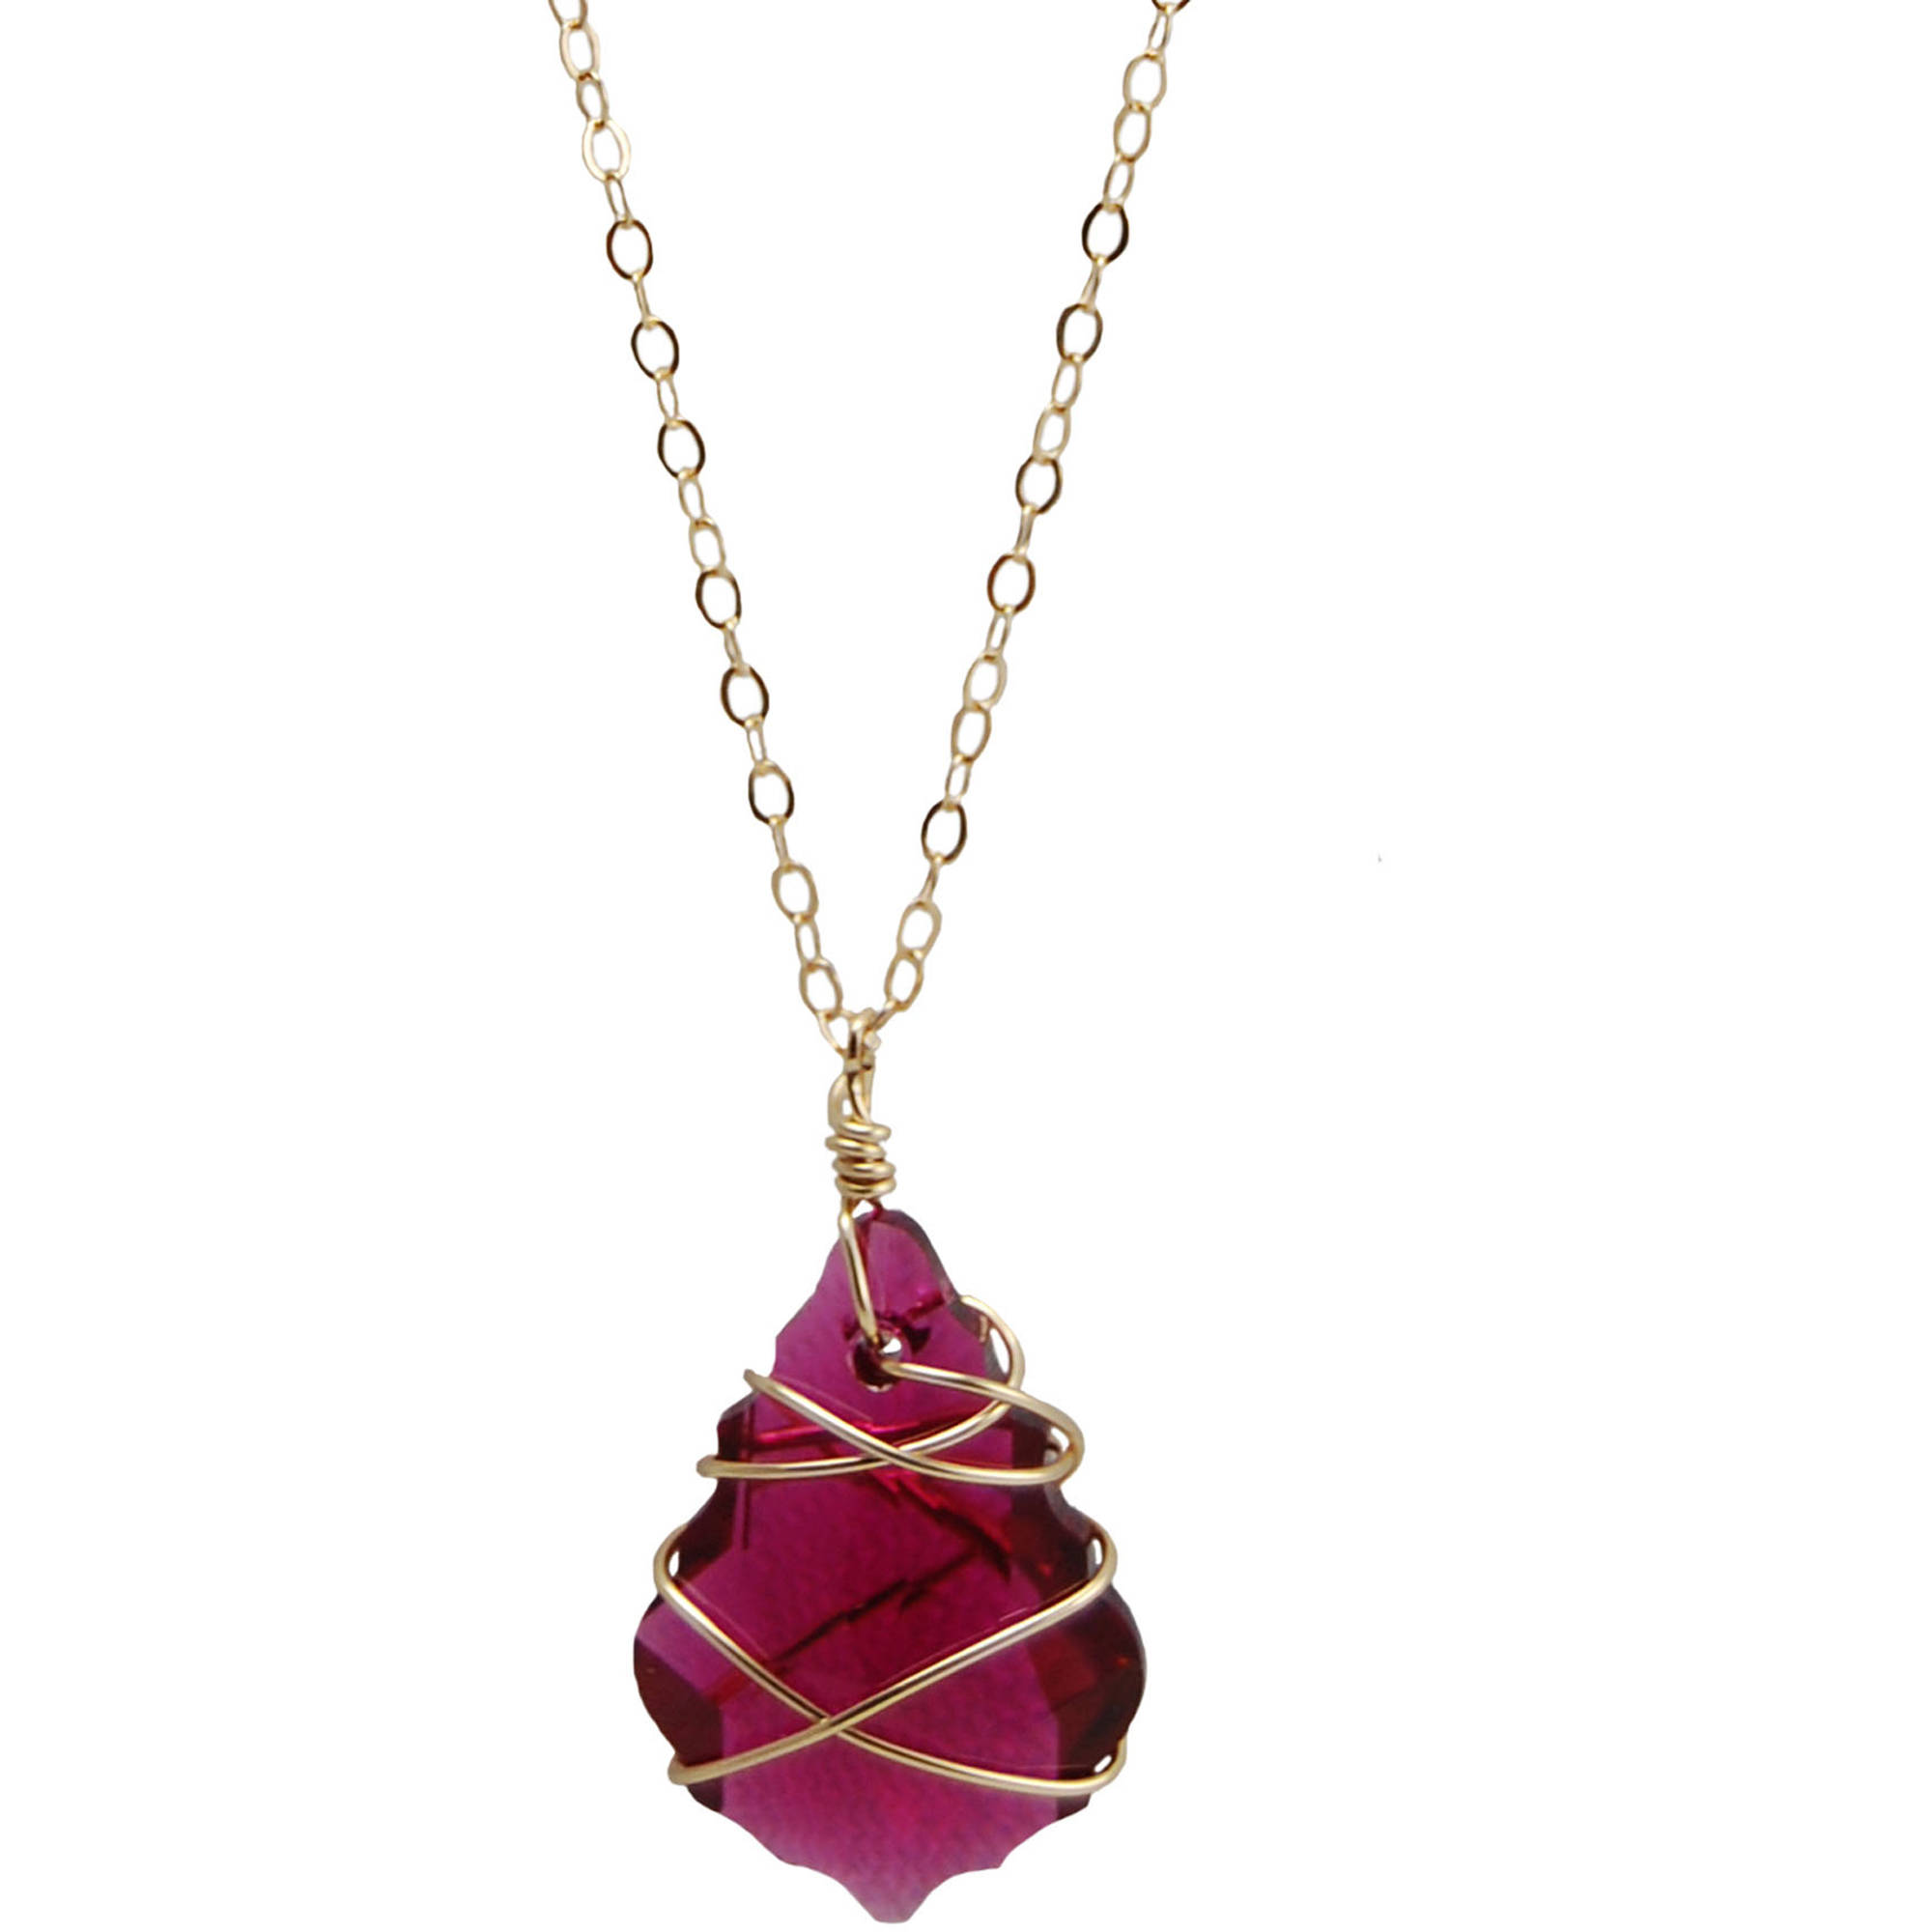 Miss Zoe by Calinana Wire Wrapped Swarovki Crystal Gold Fill Necklace, Red